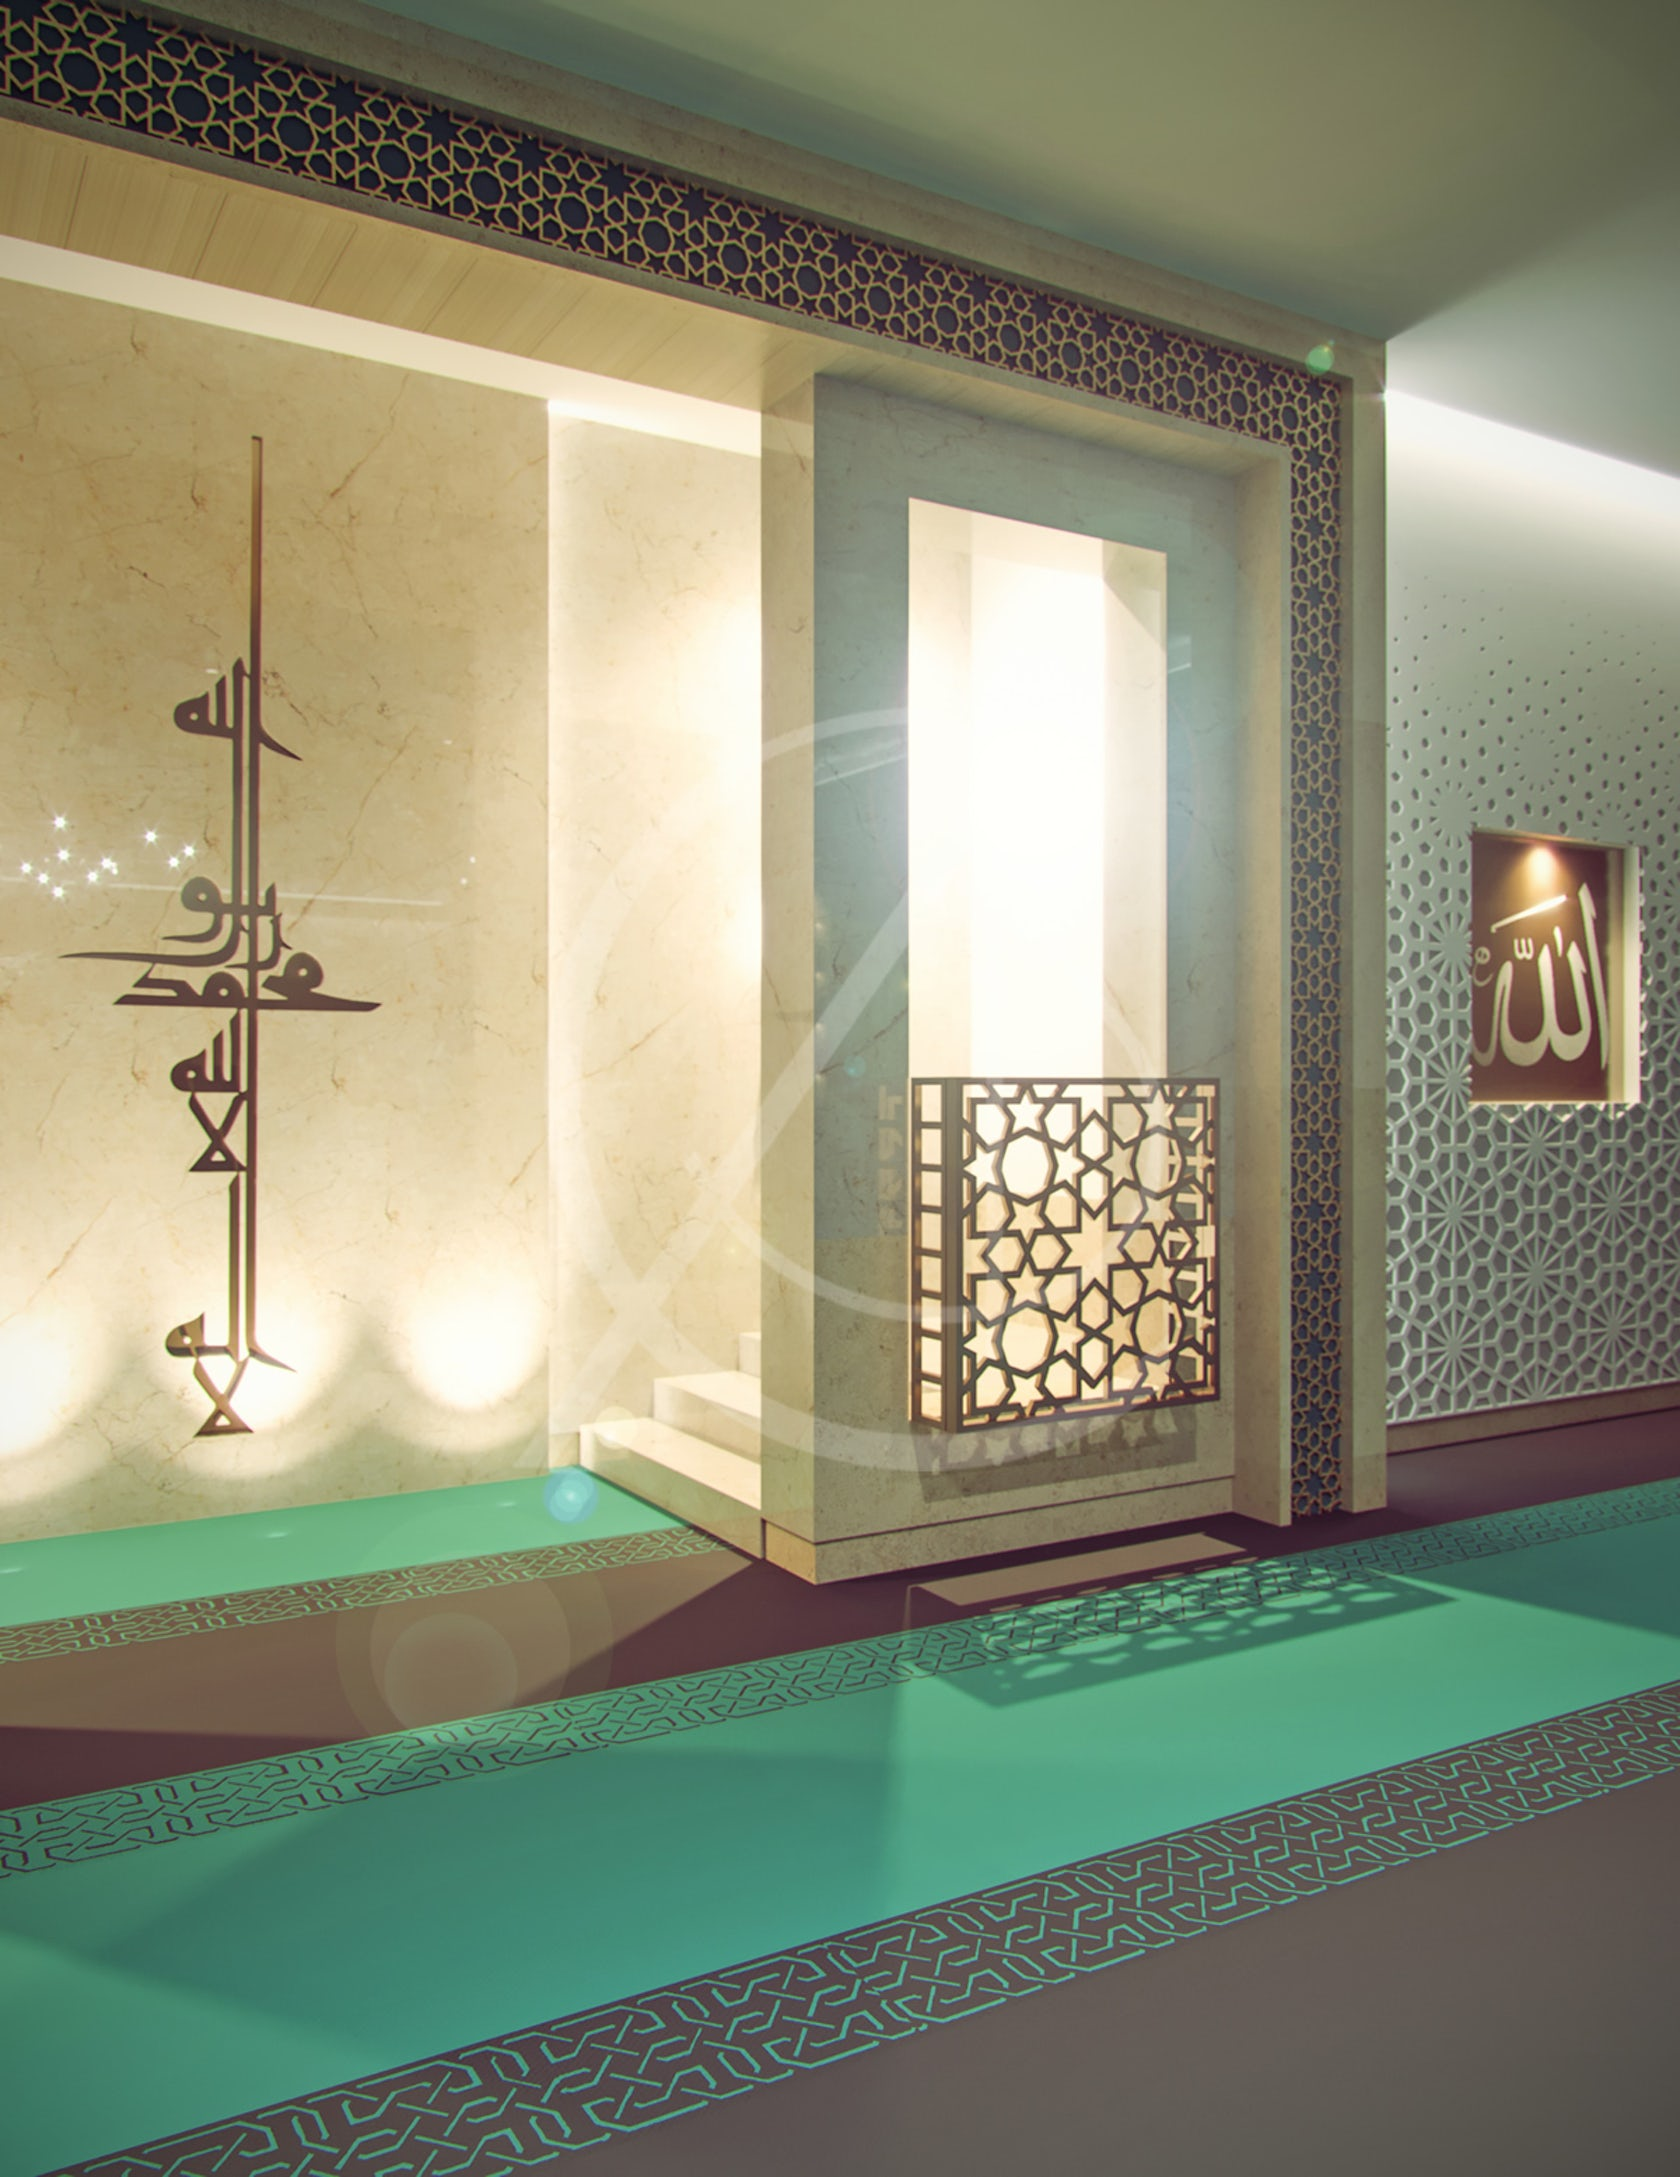 Room Construction Design: Leicester Modern Islamic Mosque Interior Design